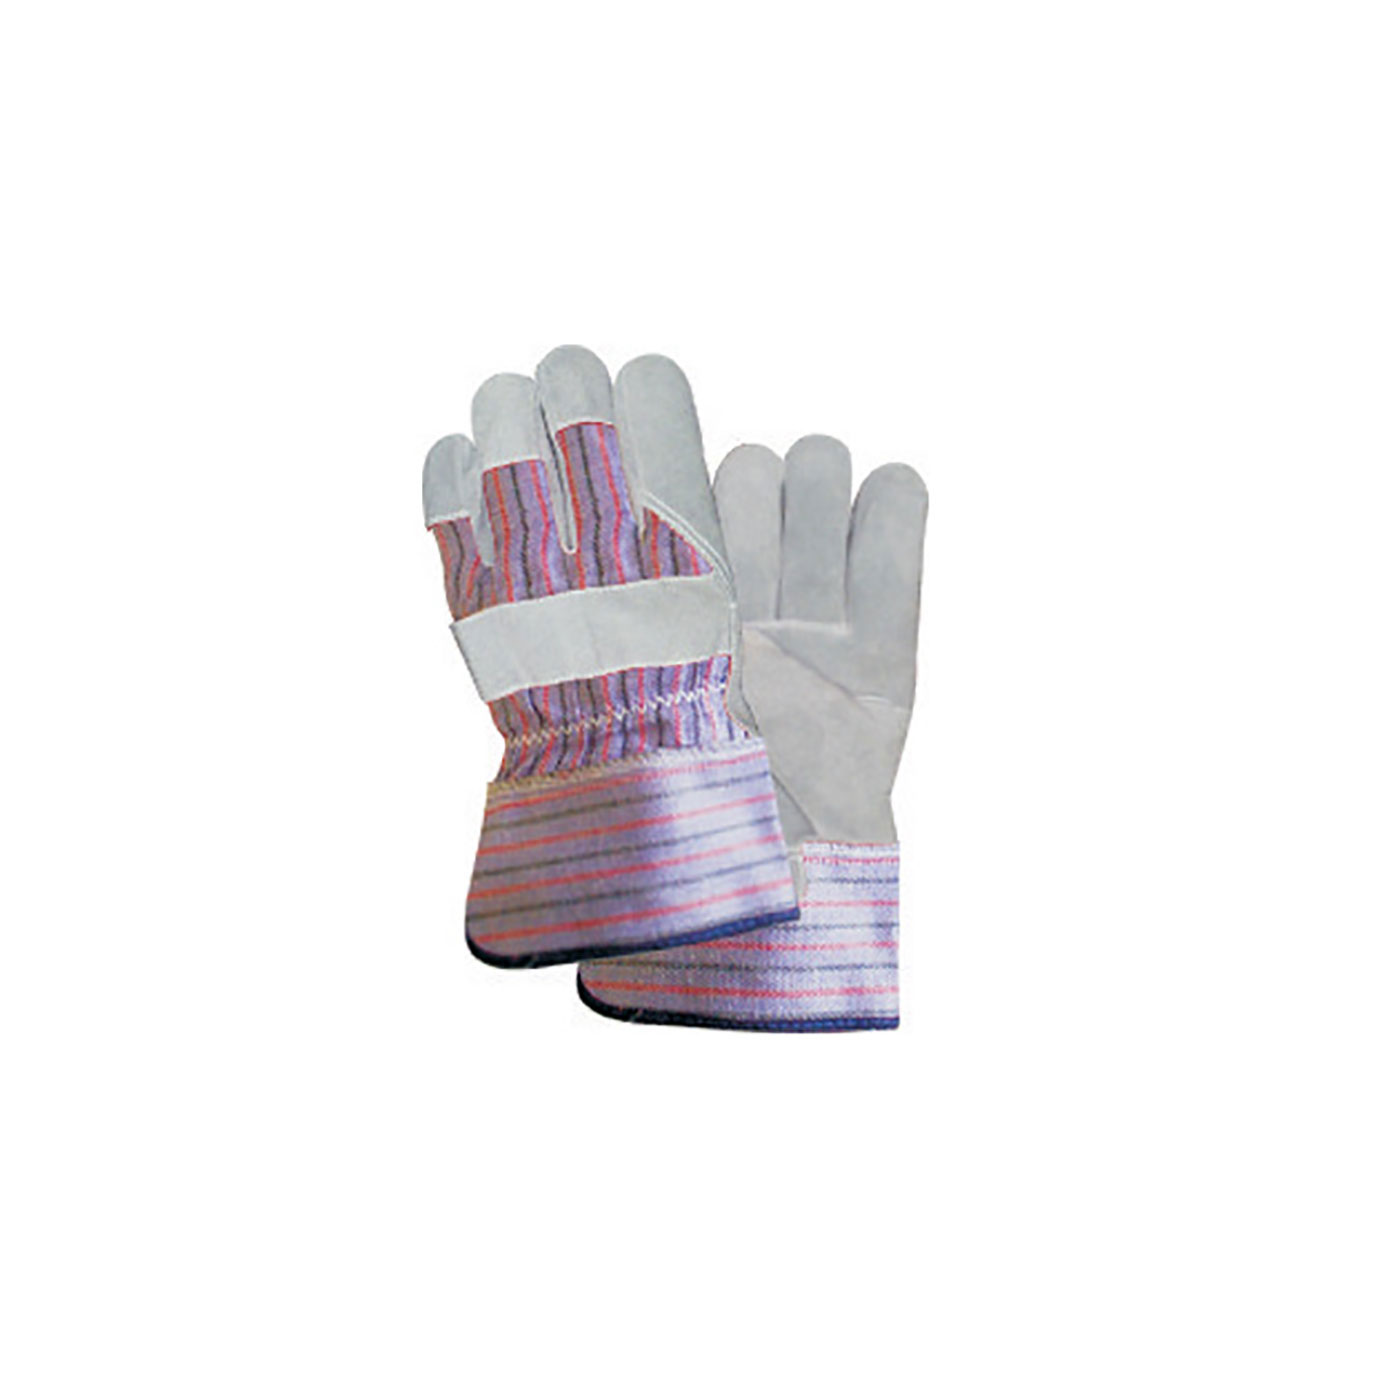 Workhorse Light Duty Fitter's Glove